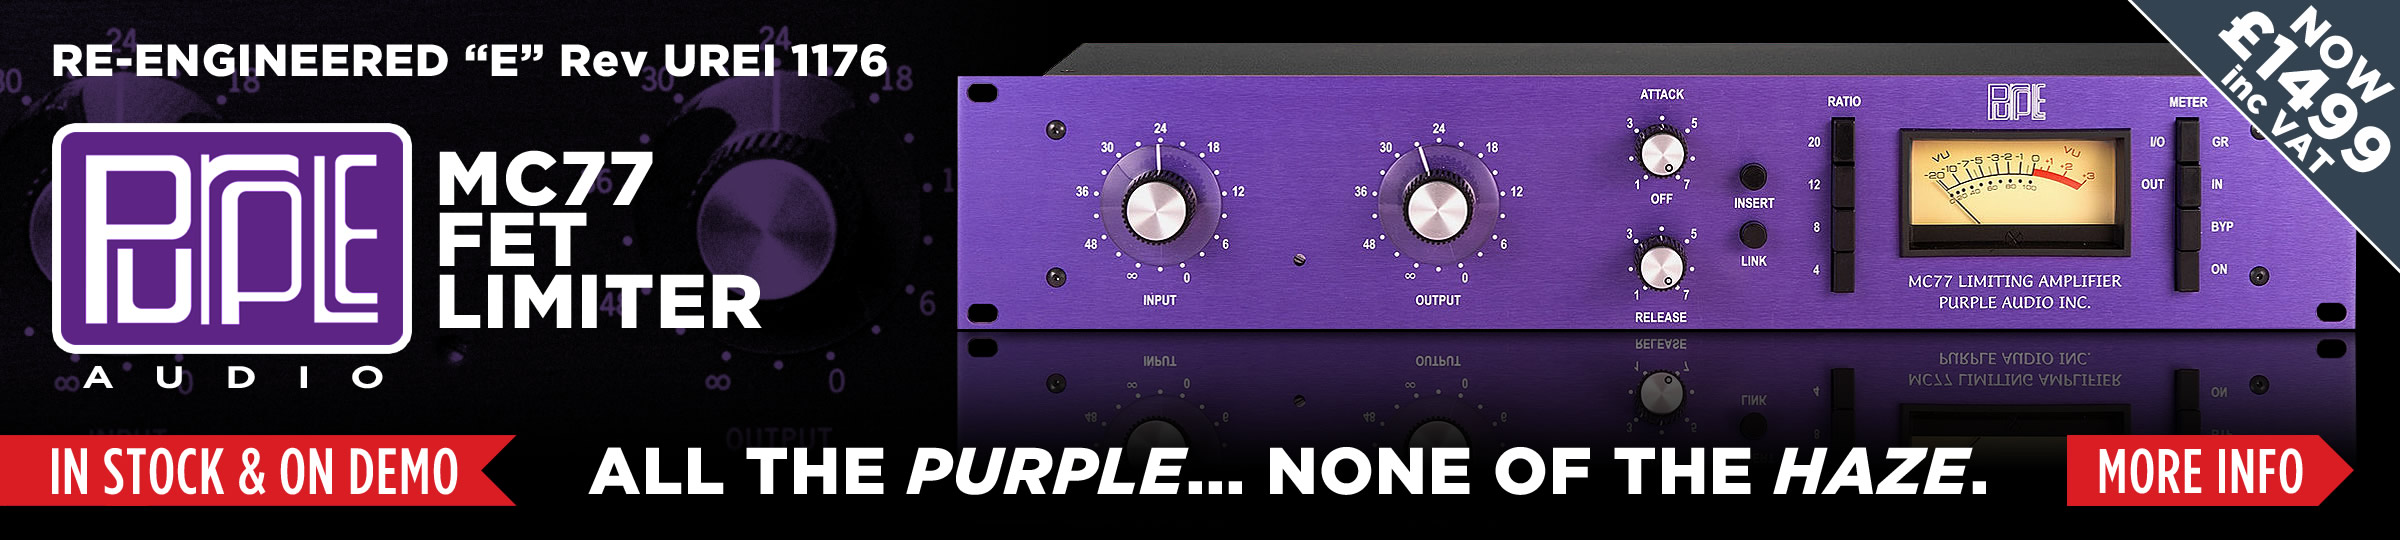 Purple Audio MC77 - Reengineered 1176